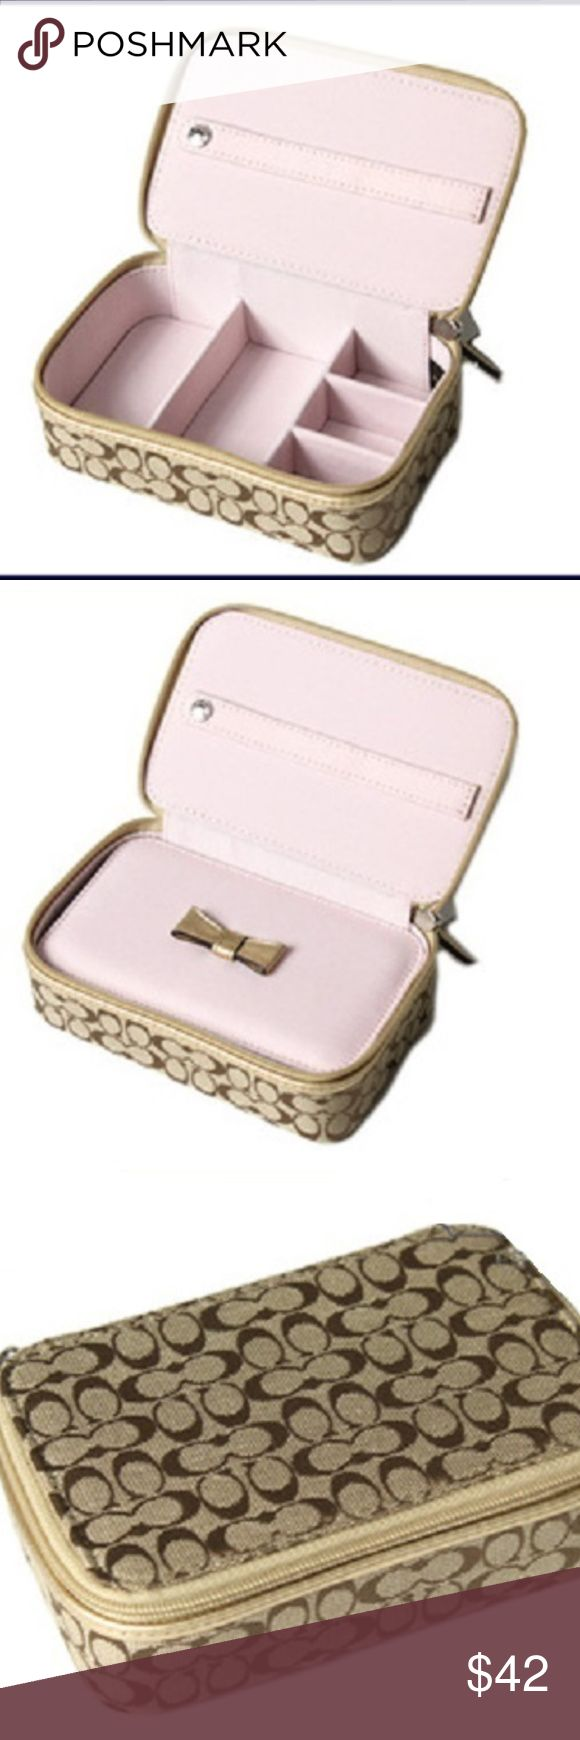 Coach Jewelry Case NWT Coach  Jewelry case A place for all your Jewelry: Earrings, Rings, Necklaces, & Bracelets Zipper coach jewelry box, comes with divider.  Retails for $98    New With Tags Coach Jewelry